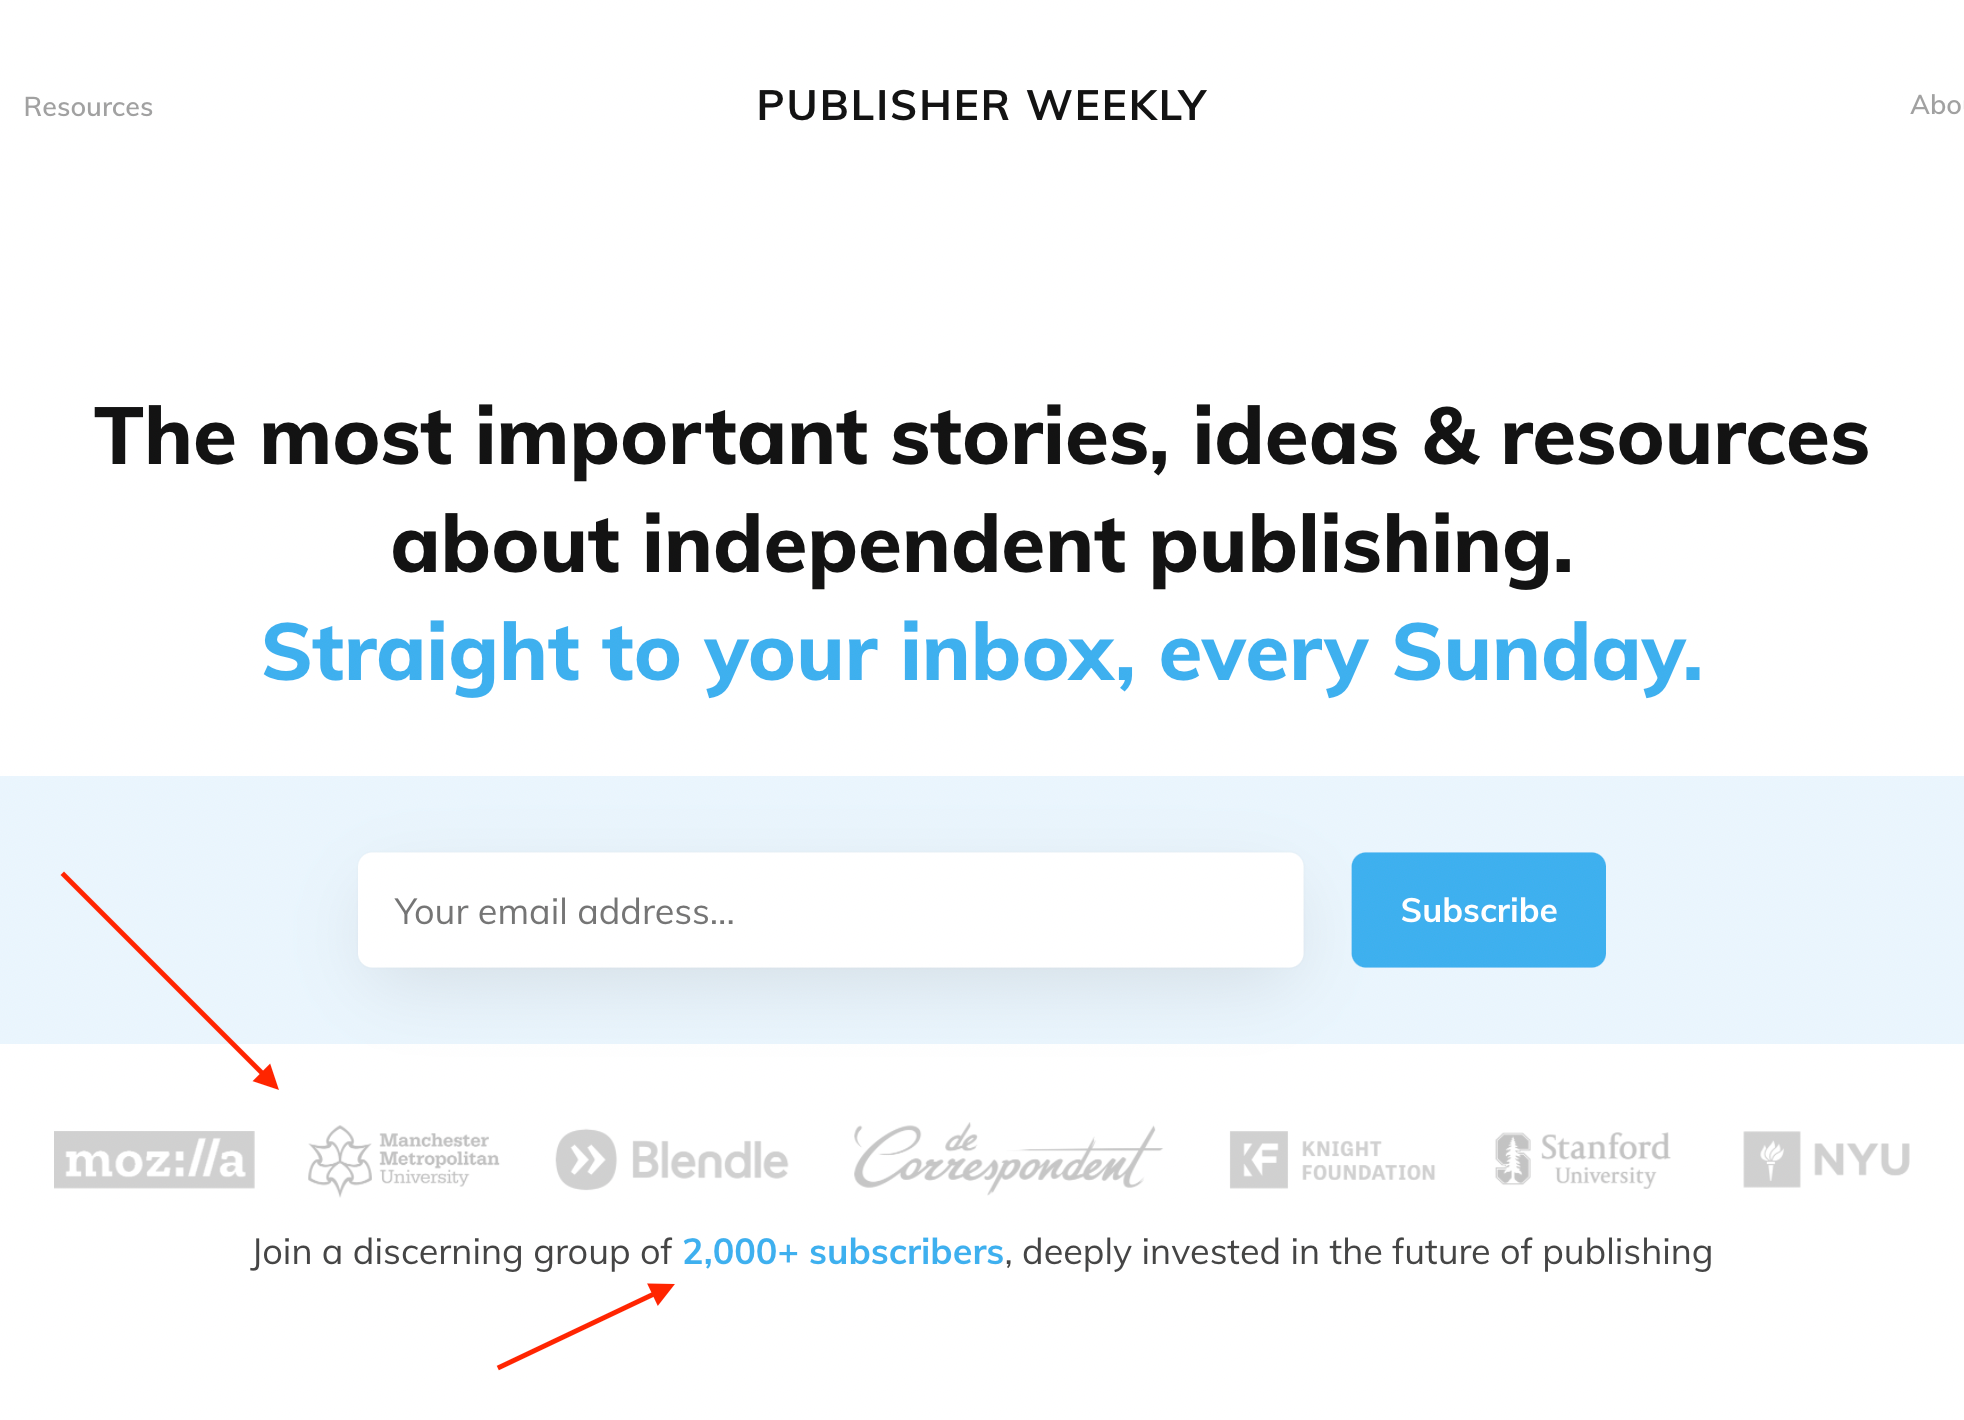 publisher weekly social proof example